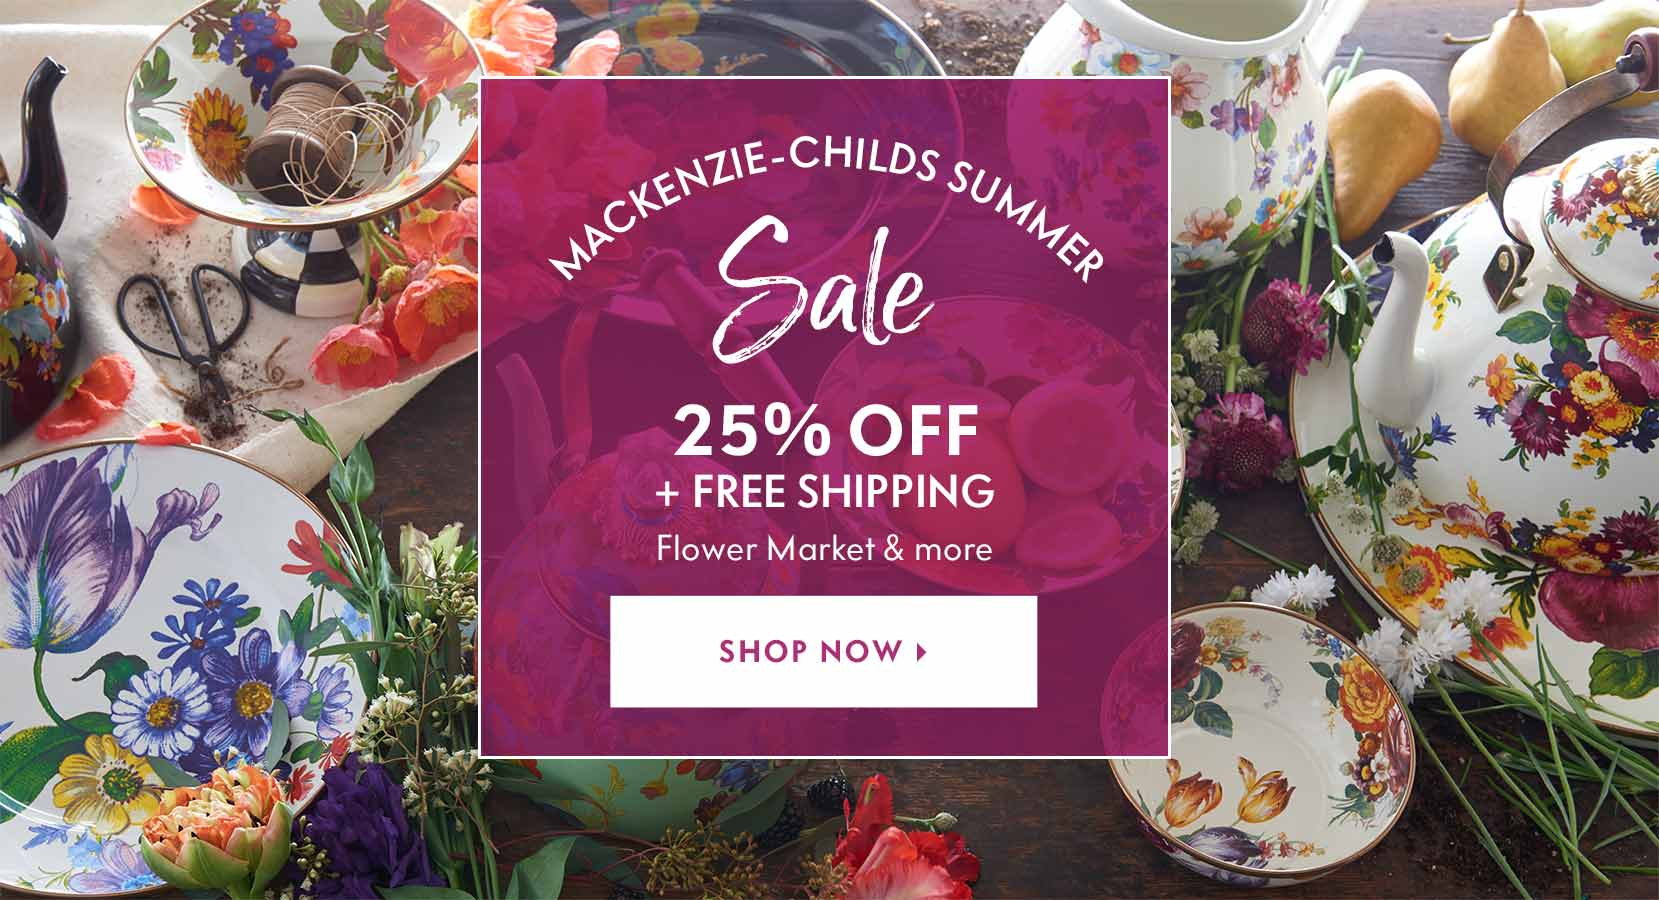 MacKenzie-Childs MacKenzie sale summer savings Flower Market